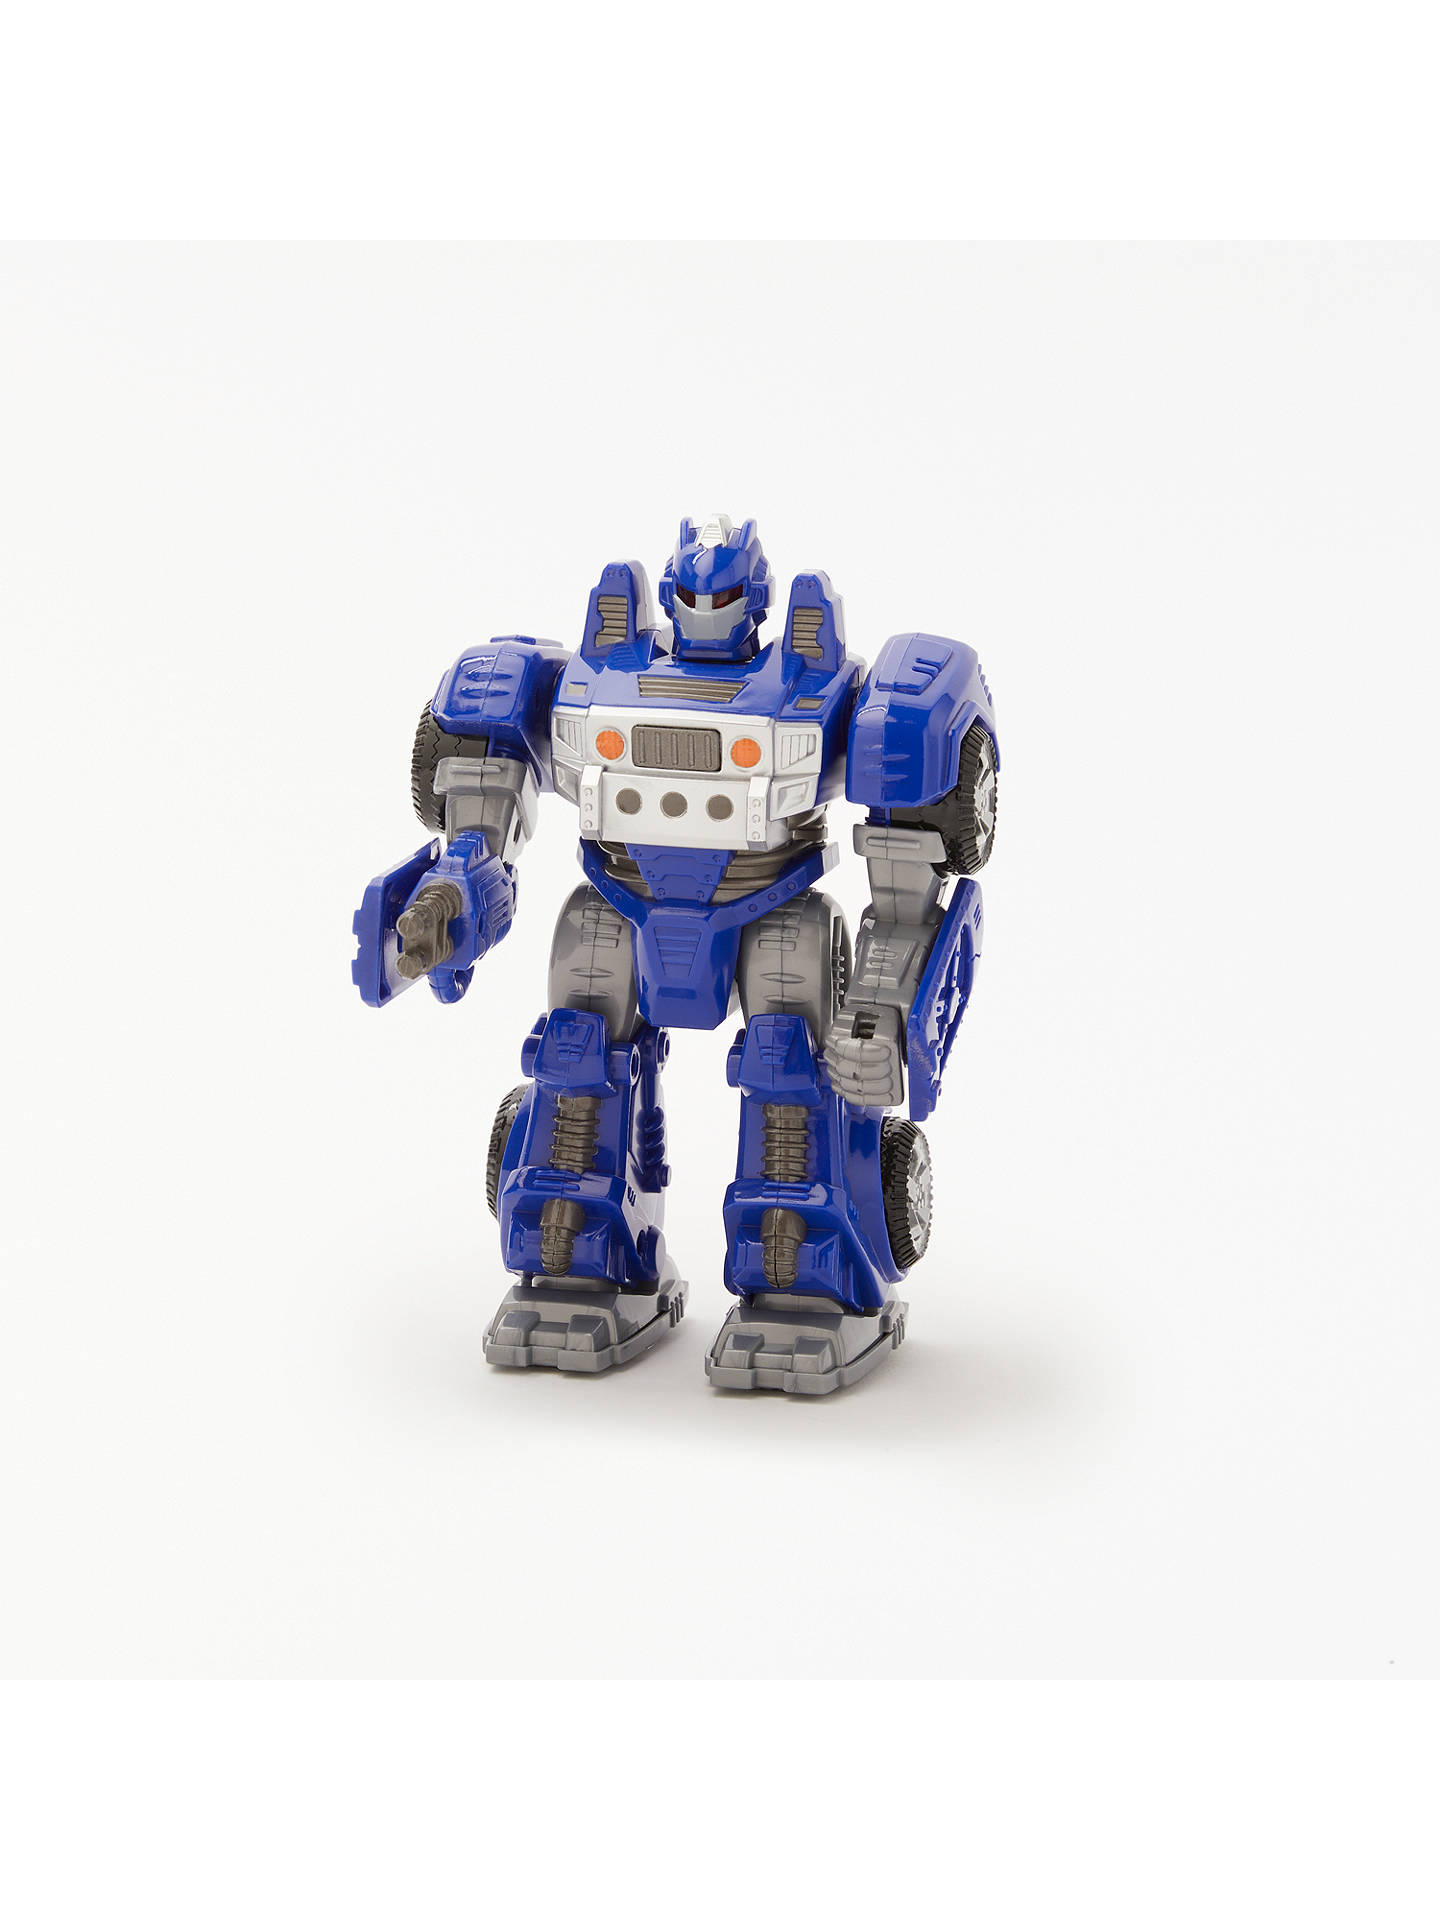 BuyJohn Lewis & Partners Small Robot Toy, Blue Online at johnlewis.com